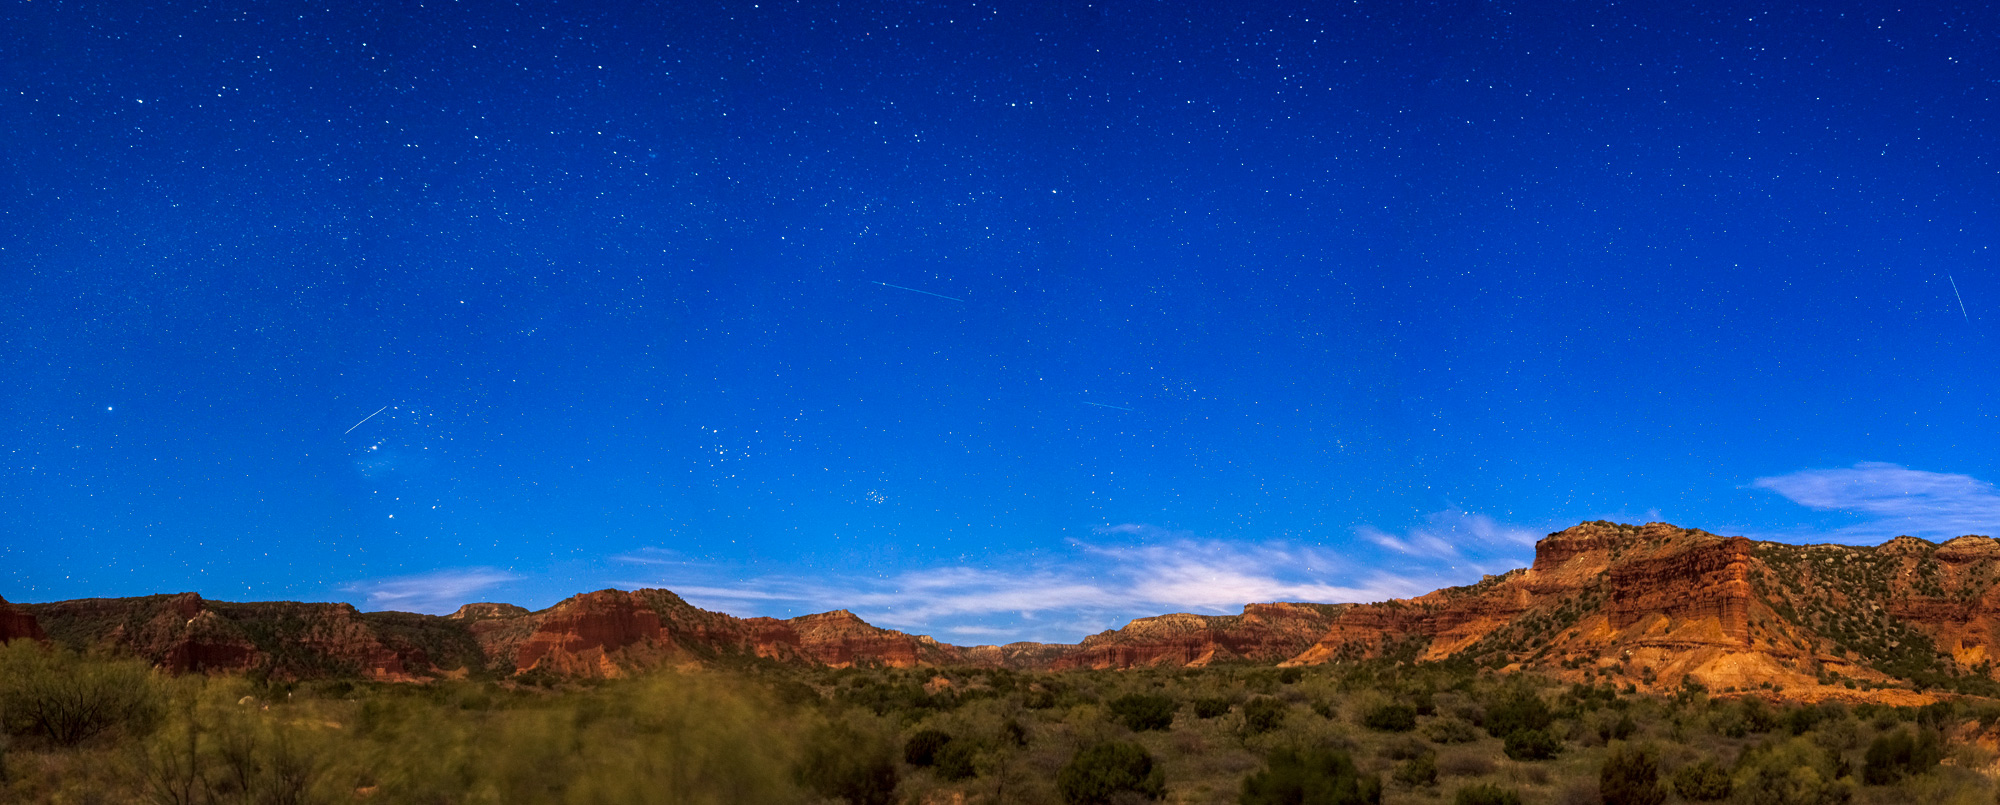 Stars over Caprock Canyons State Park, Texas